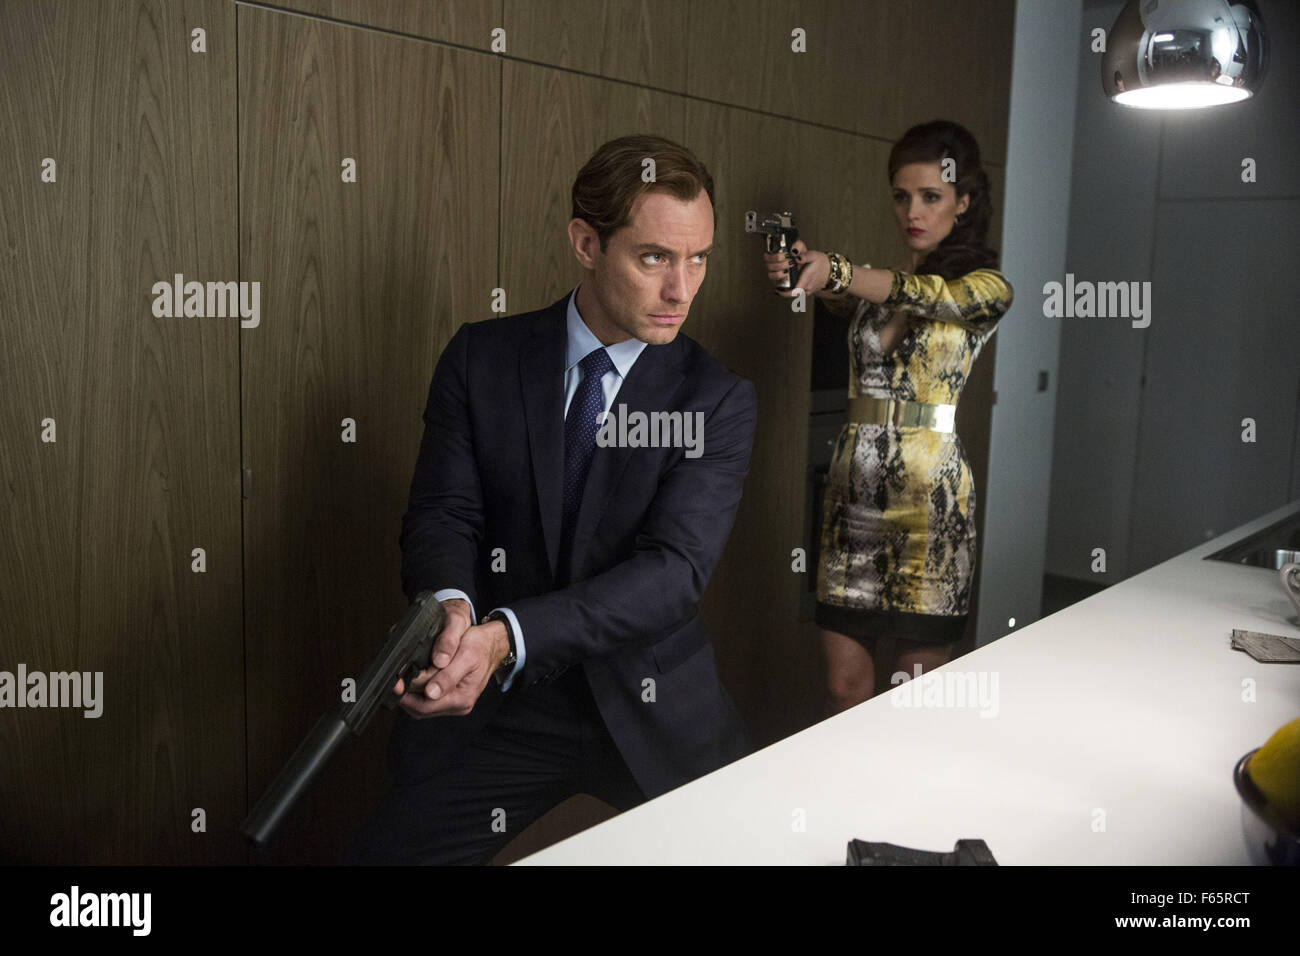 Spy Year : 2015 USA Director : Paul Feig Jude Law, Rose Byrne - Stock Image